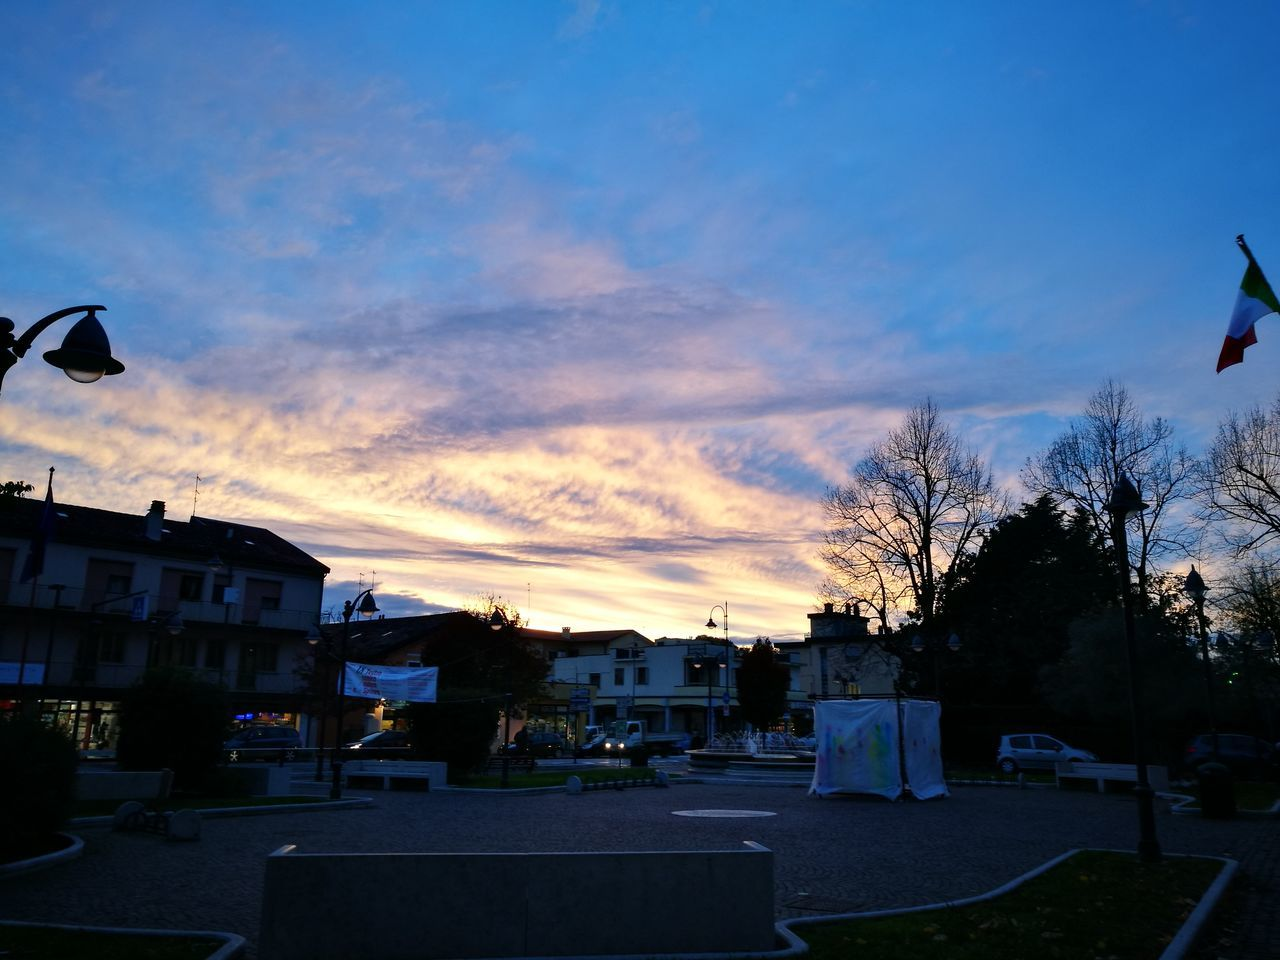 building exterior, architecture, built structure, house, sky, residential building, outdoors, tree, sunset, cloud - sky, no people, town, city, nature, day